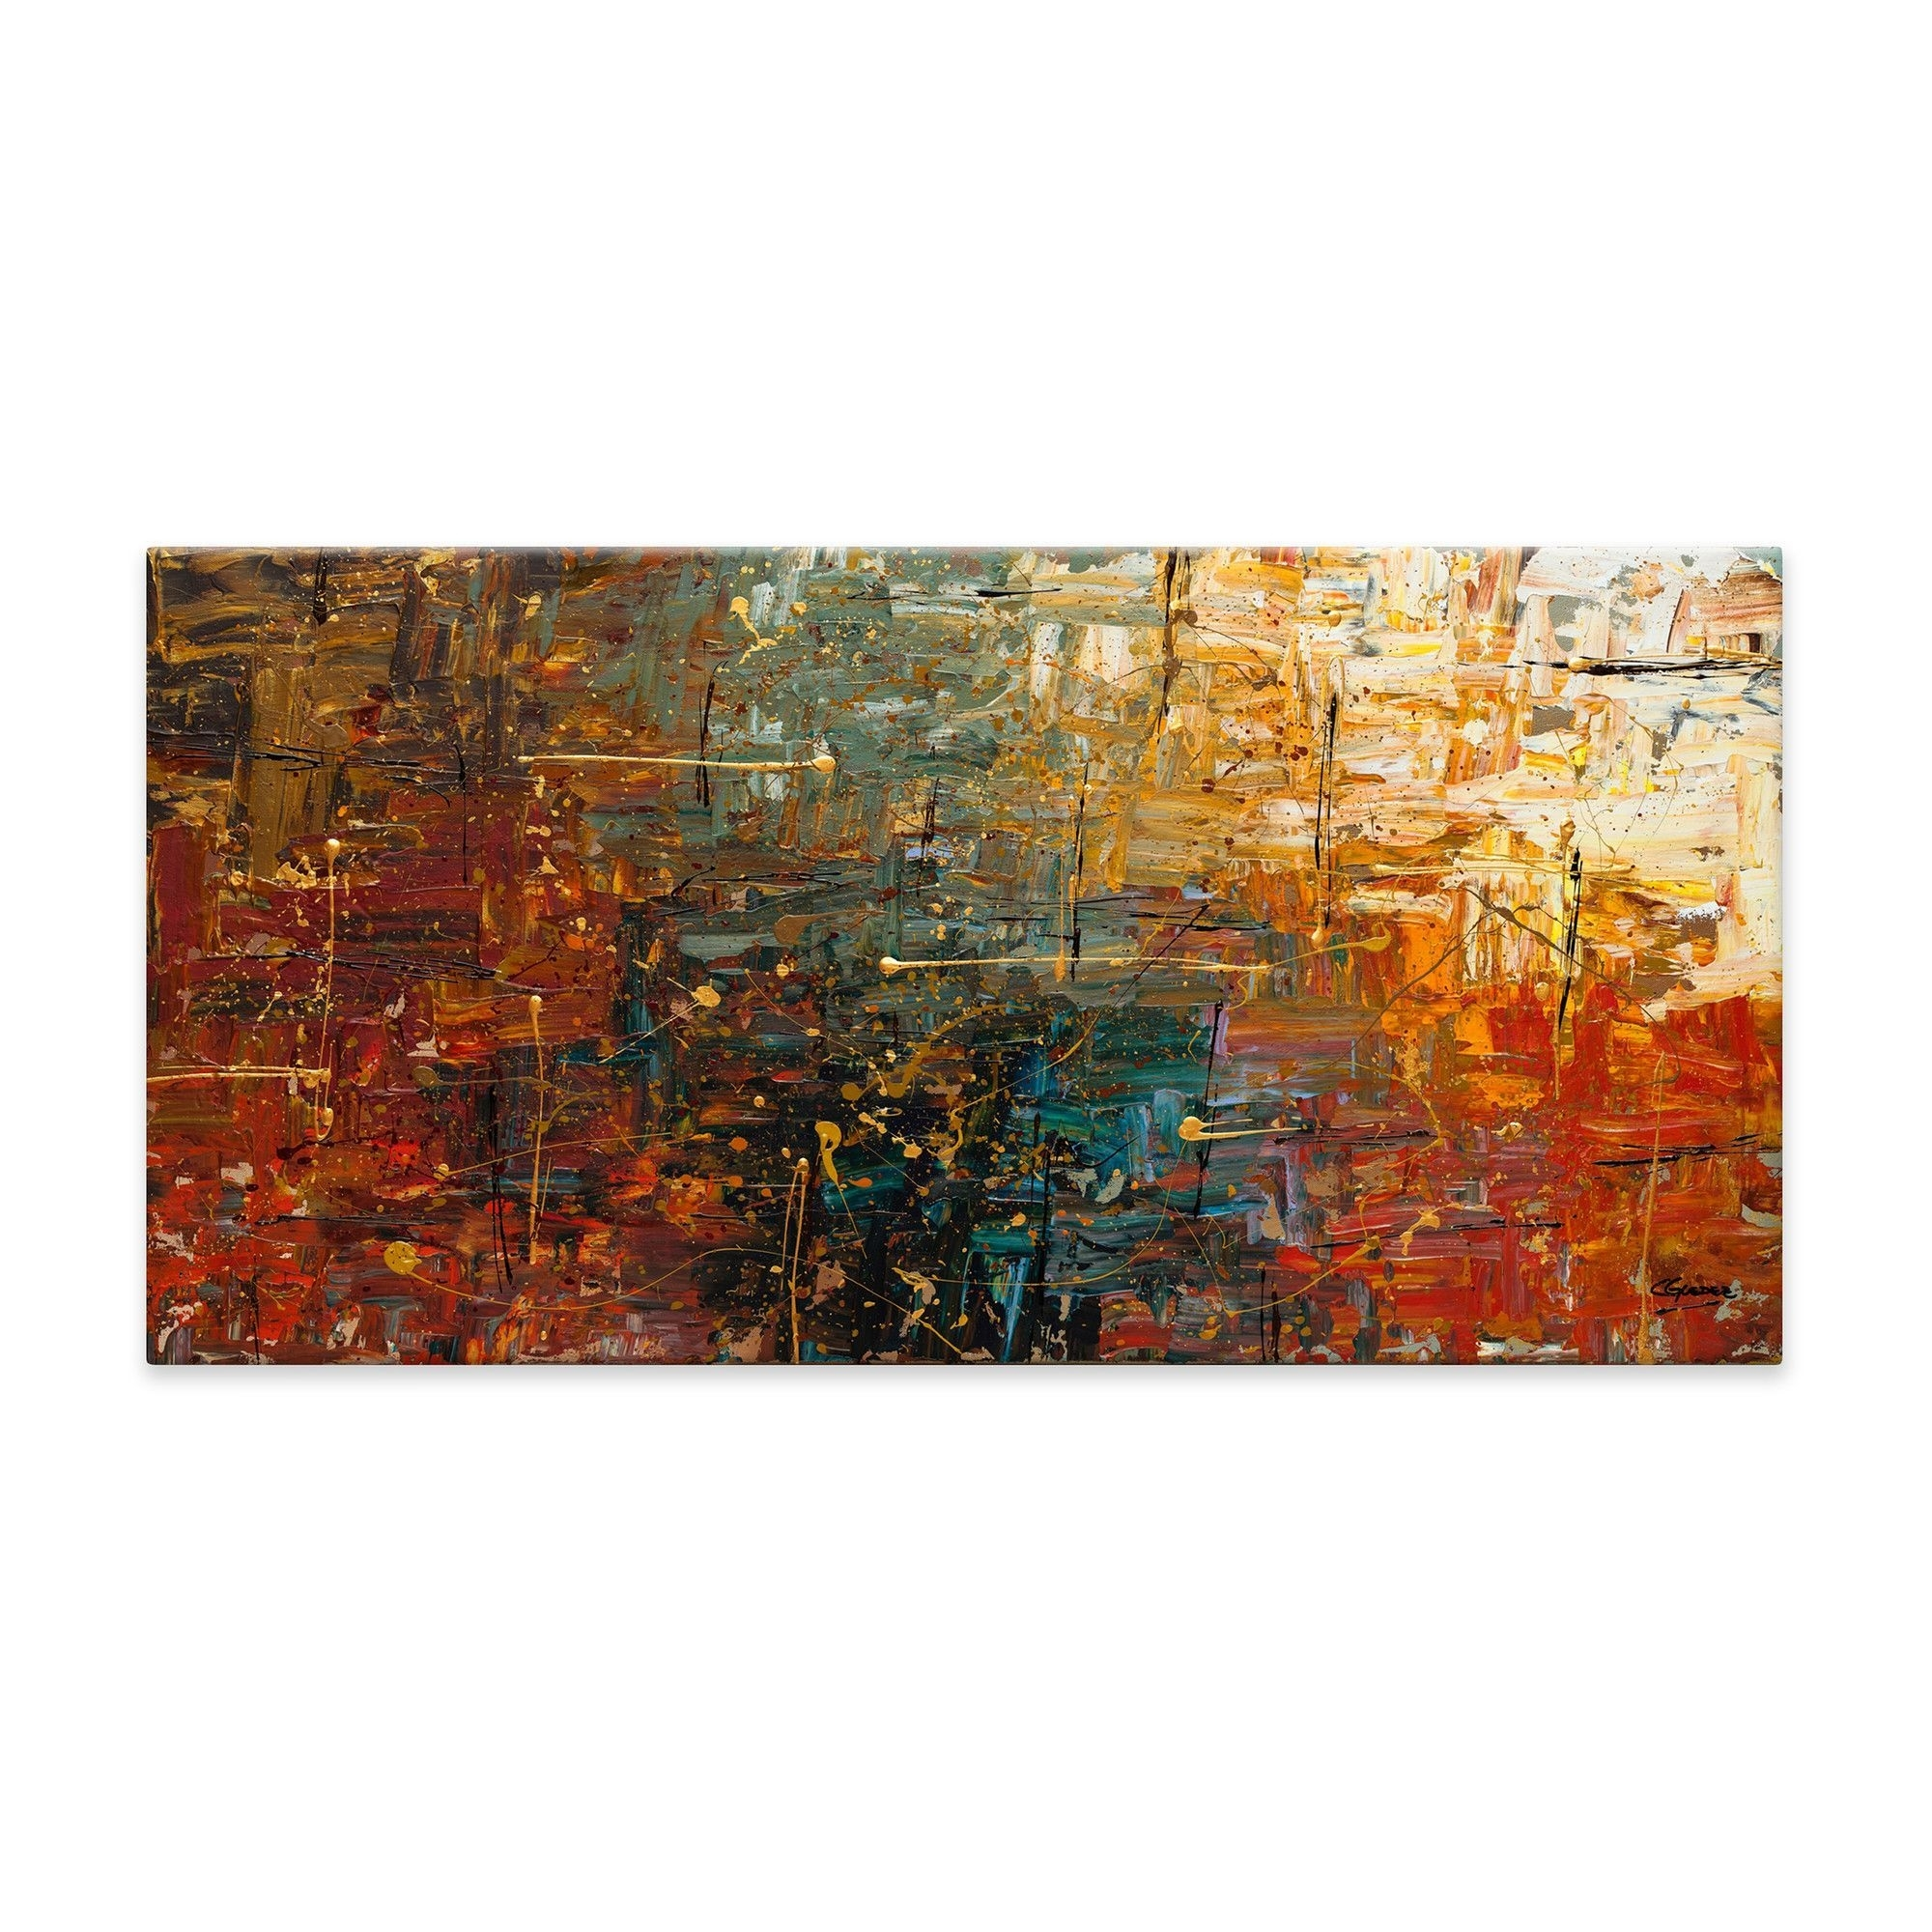 Gold Splashcarmen Guedez Painting Print On Canvas | Painting Regarding 2018 Canvas Wall Art Pairs (View 5 of 15)